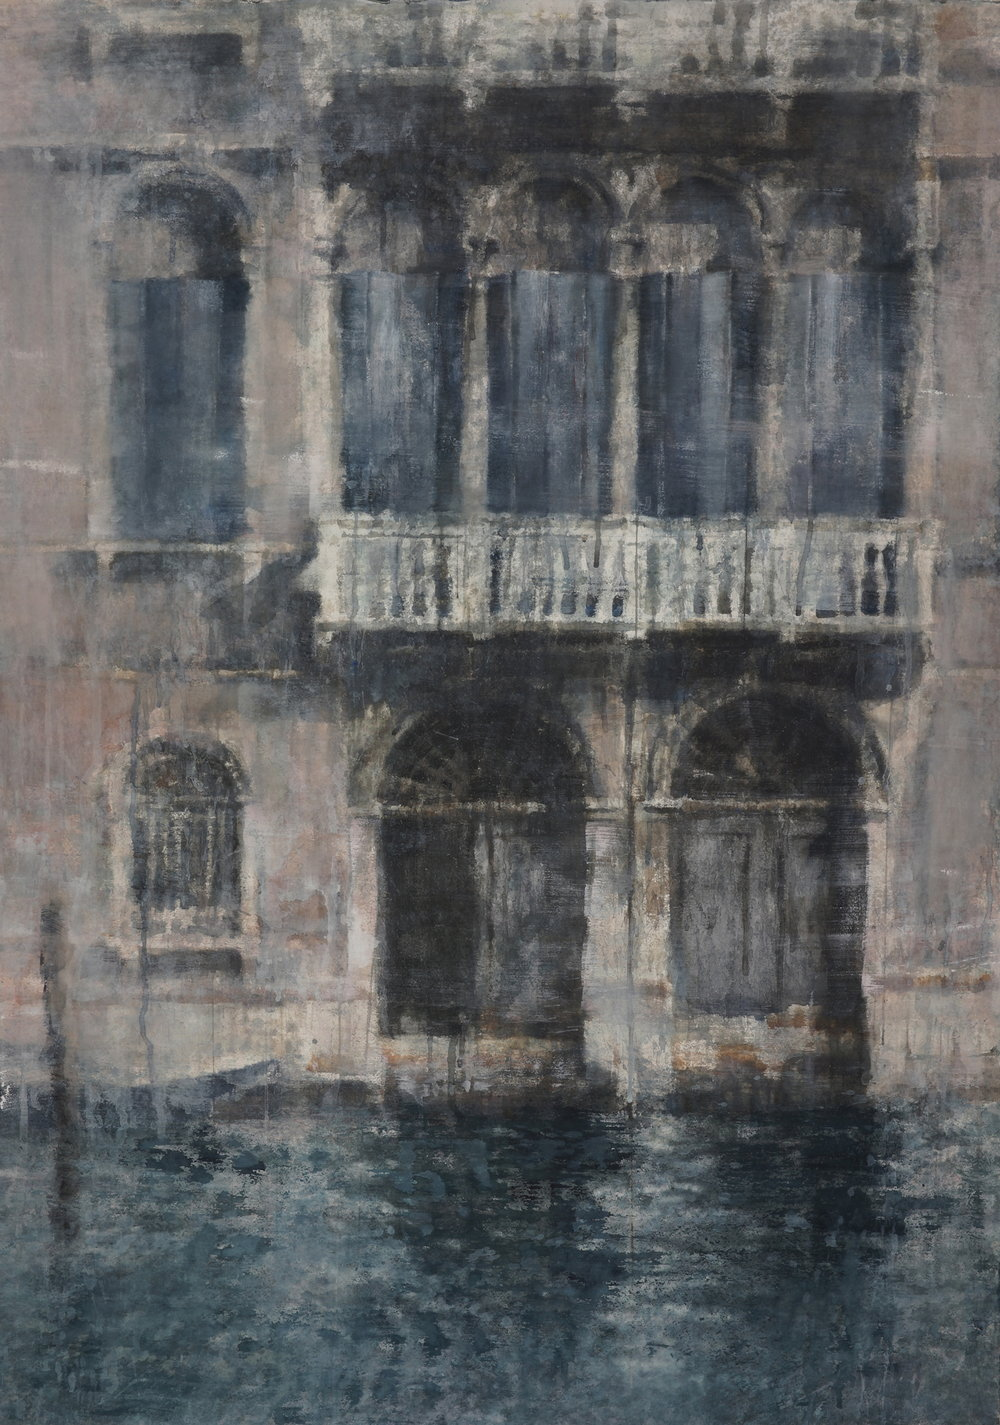 Windows of Venice III, 52x37 inches